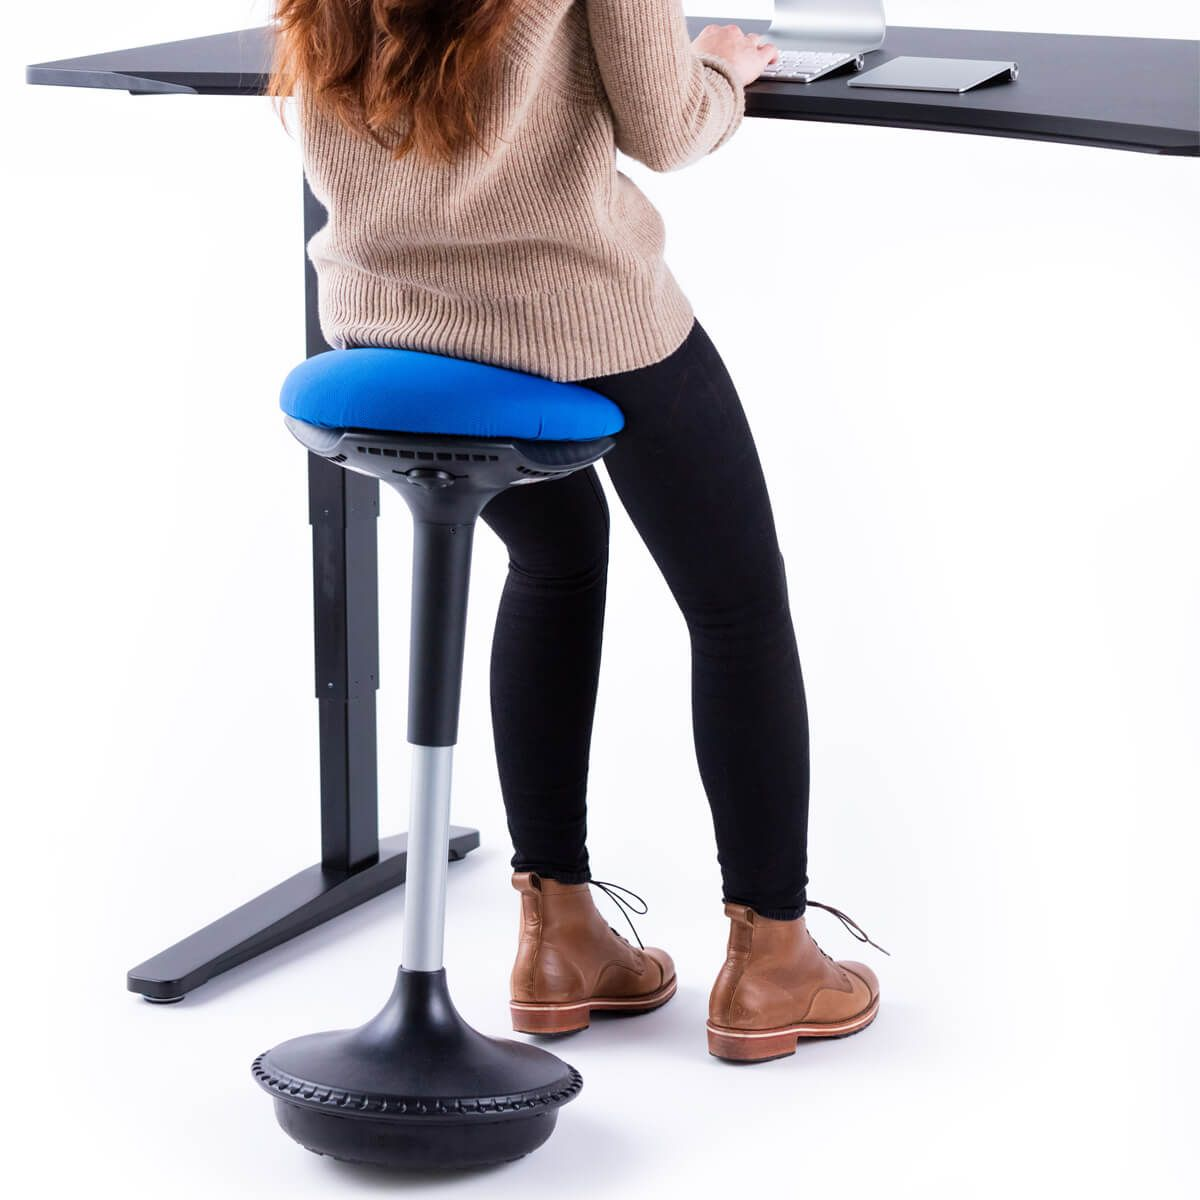 Maintain your posture and activate a healthy core with the UPLIFT Motion Stool keeping you moving  sc 1 st  Pinterest & Maintain your posture and activate a healthy core with the UPLIFT ... islam-shia.org